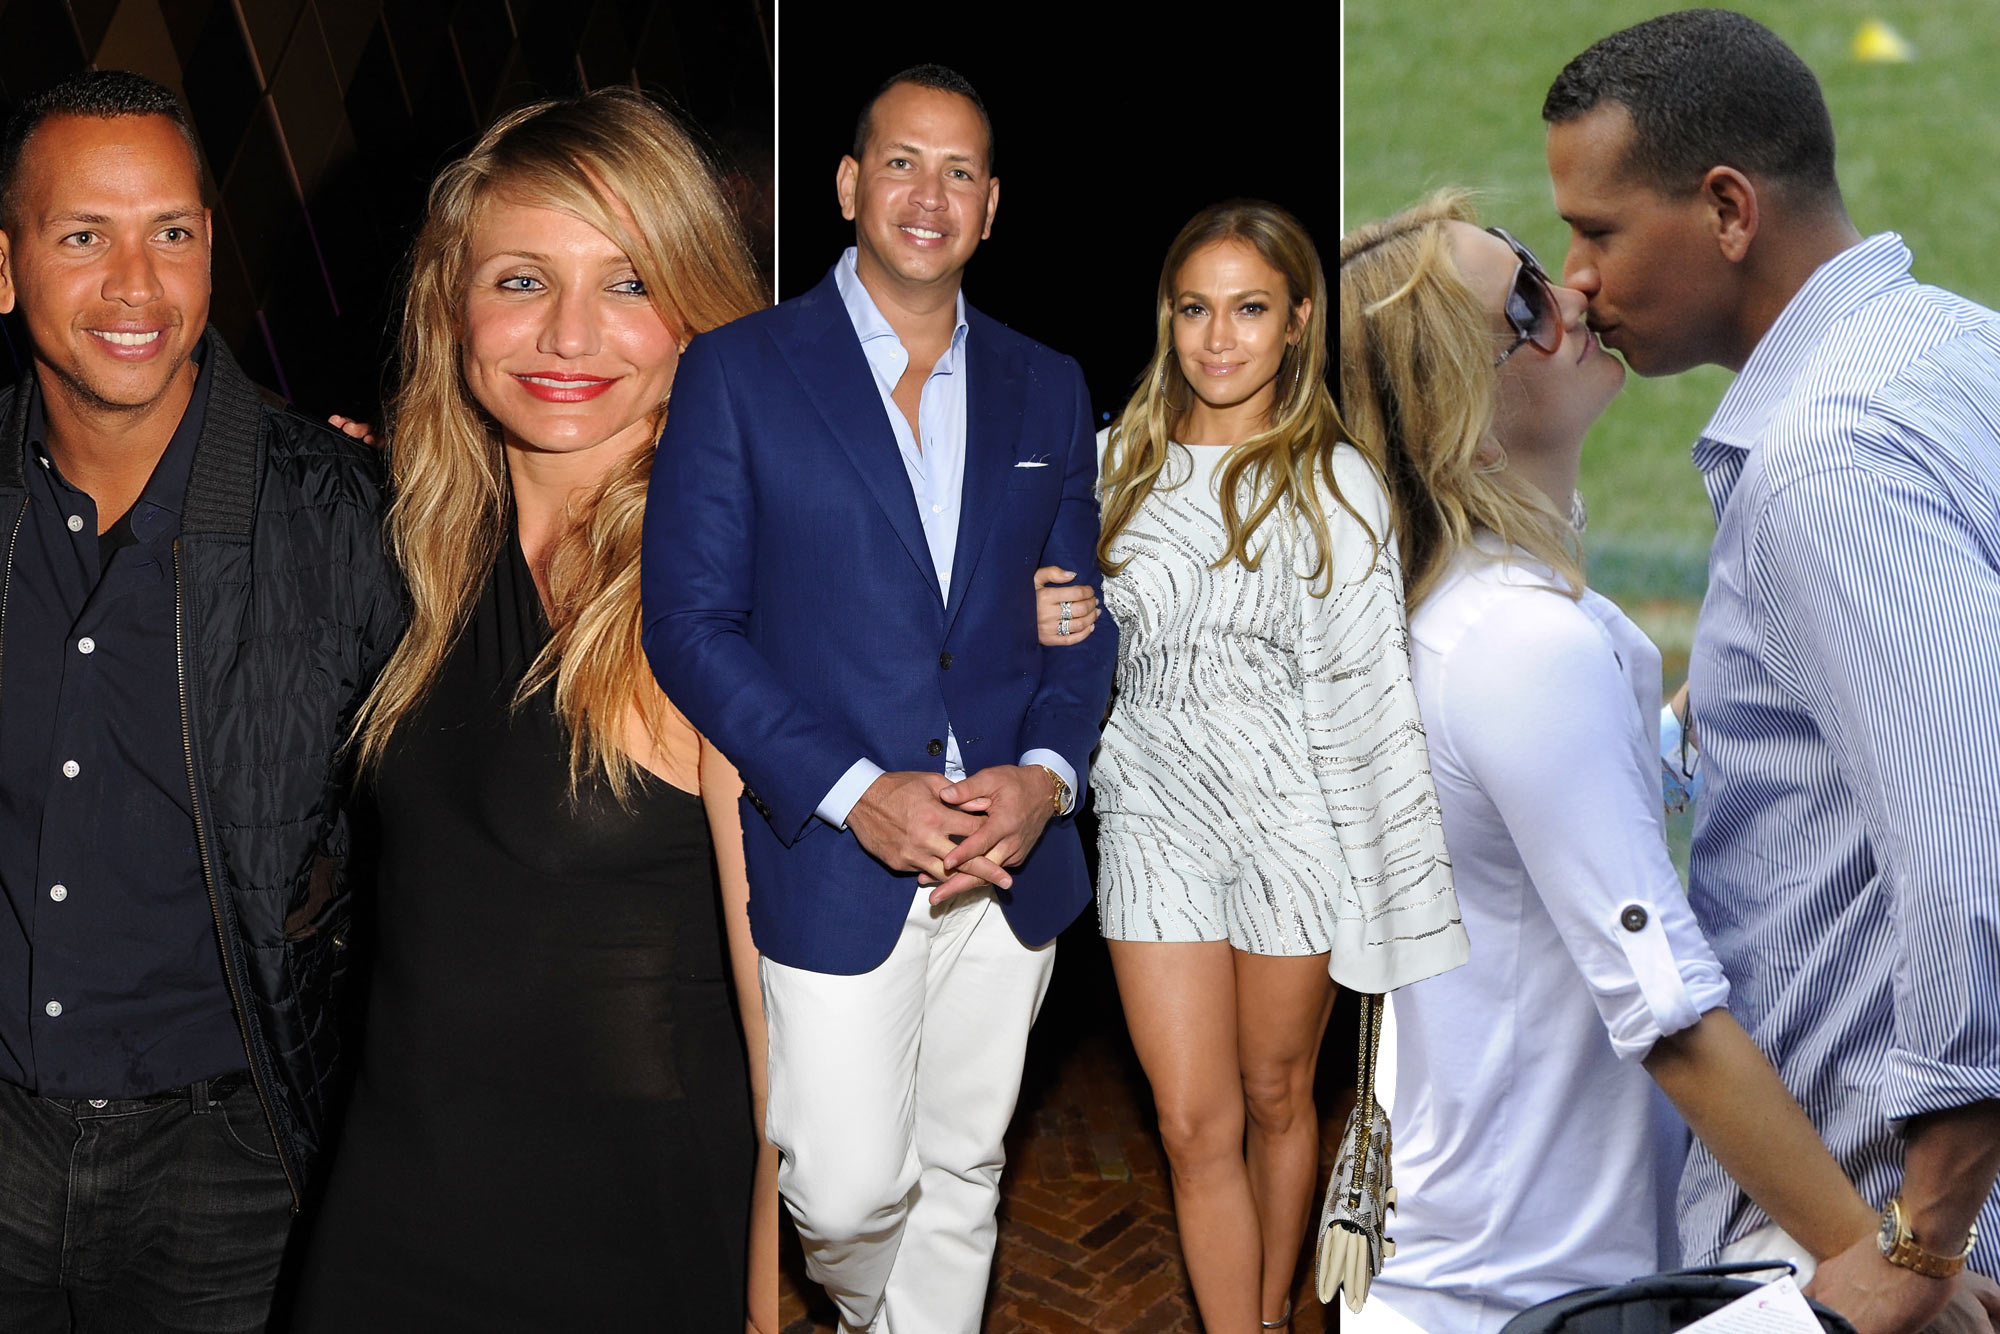 Alex Rodriguez S Dating History Jennifer Lopez And All His Exes